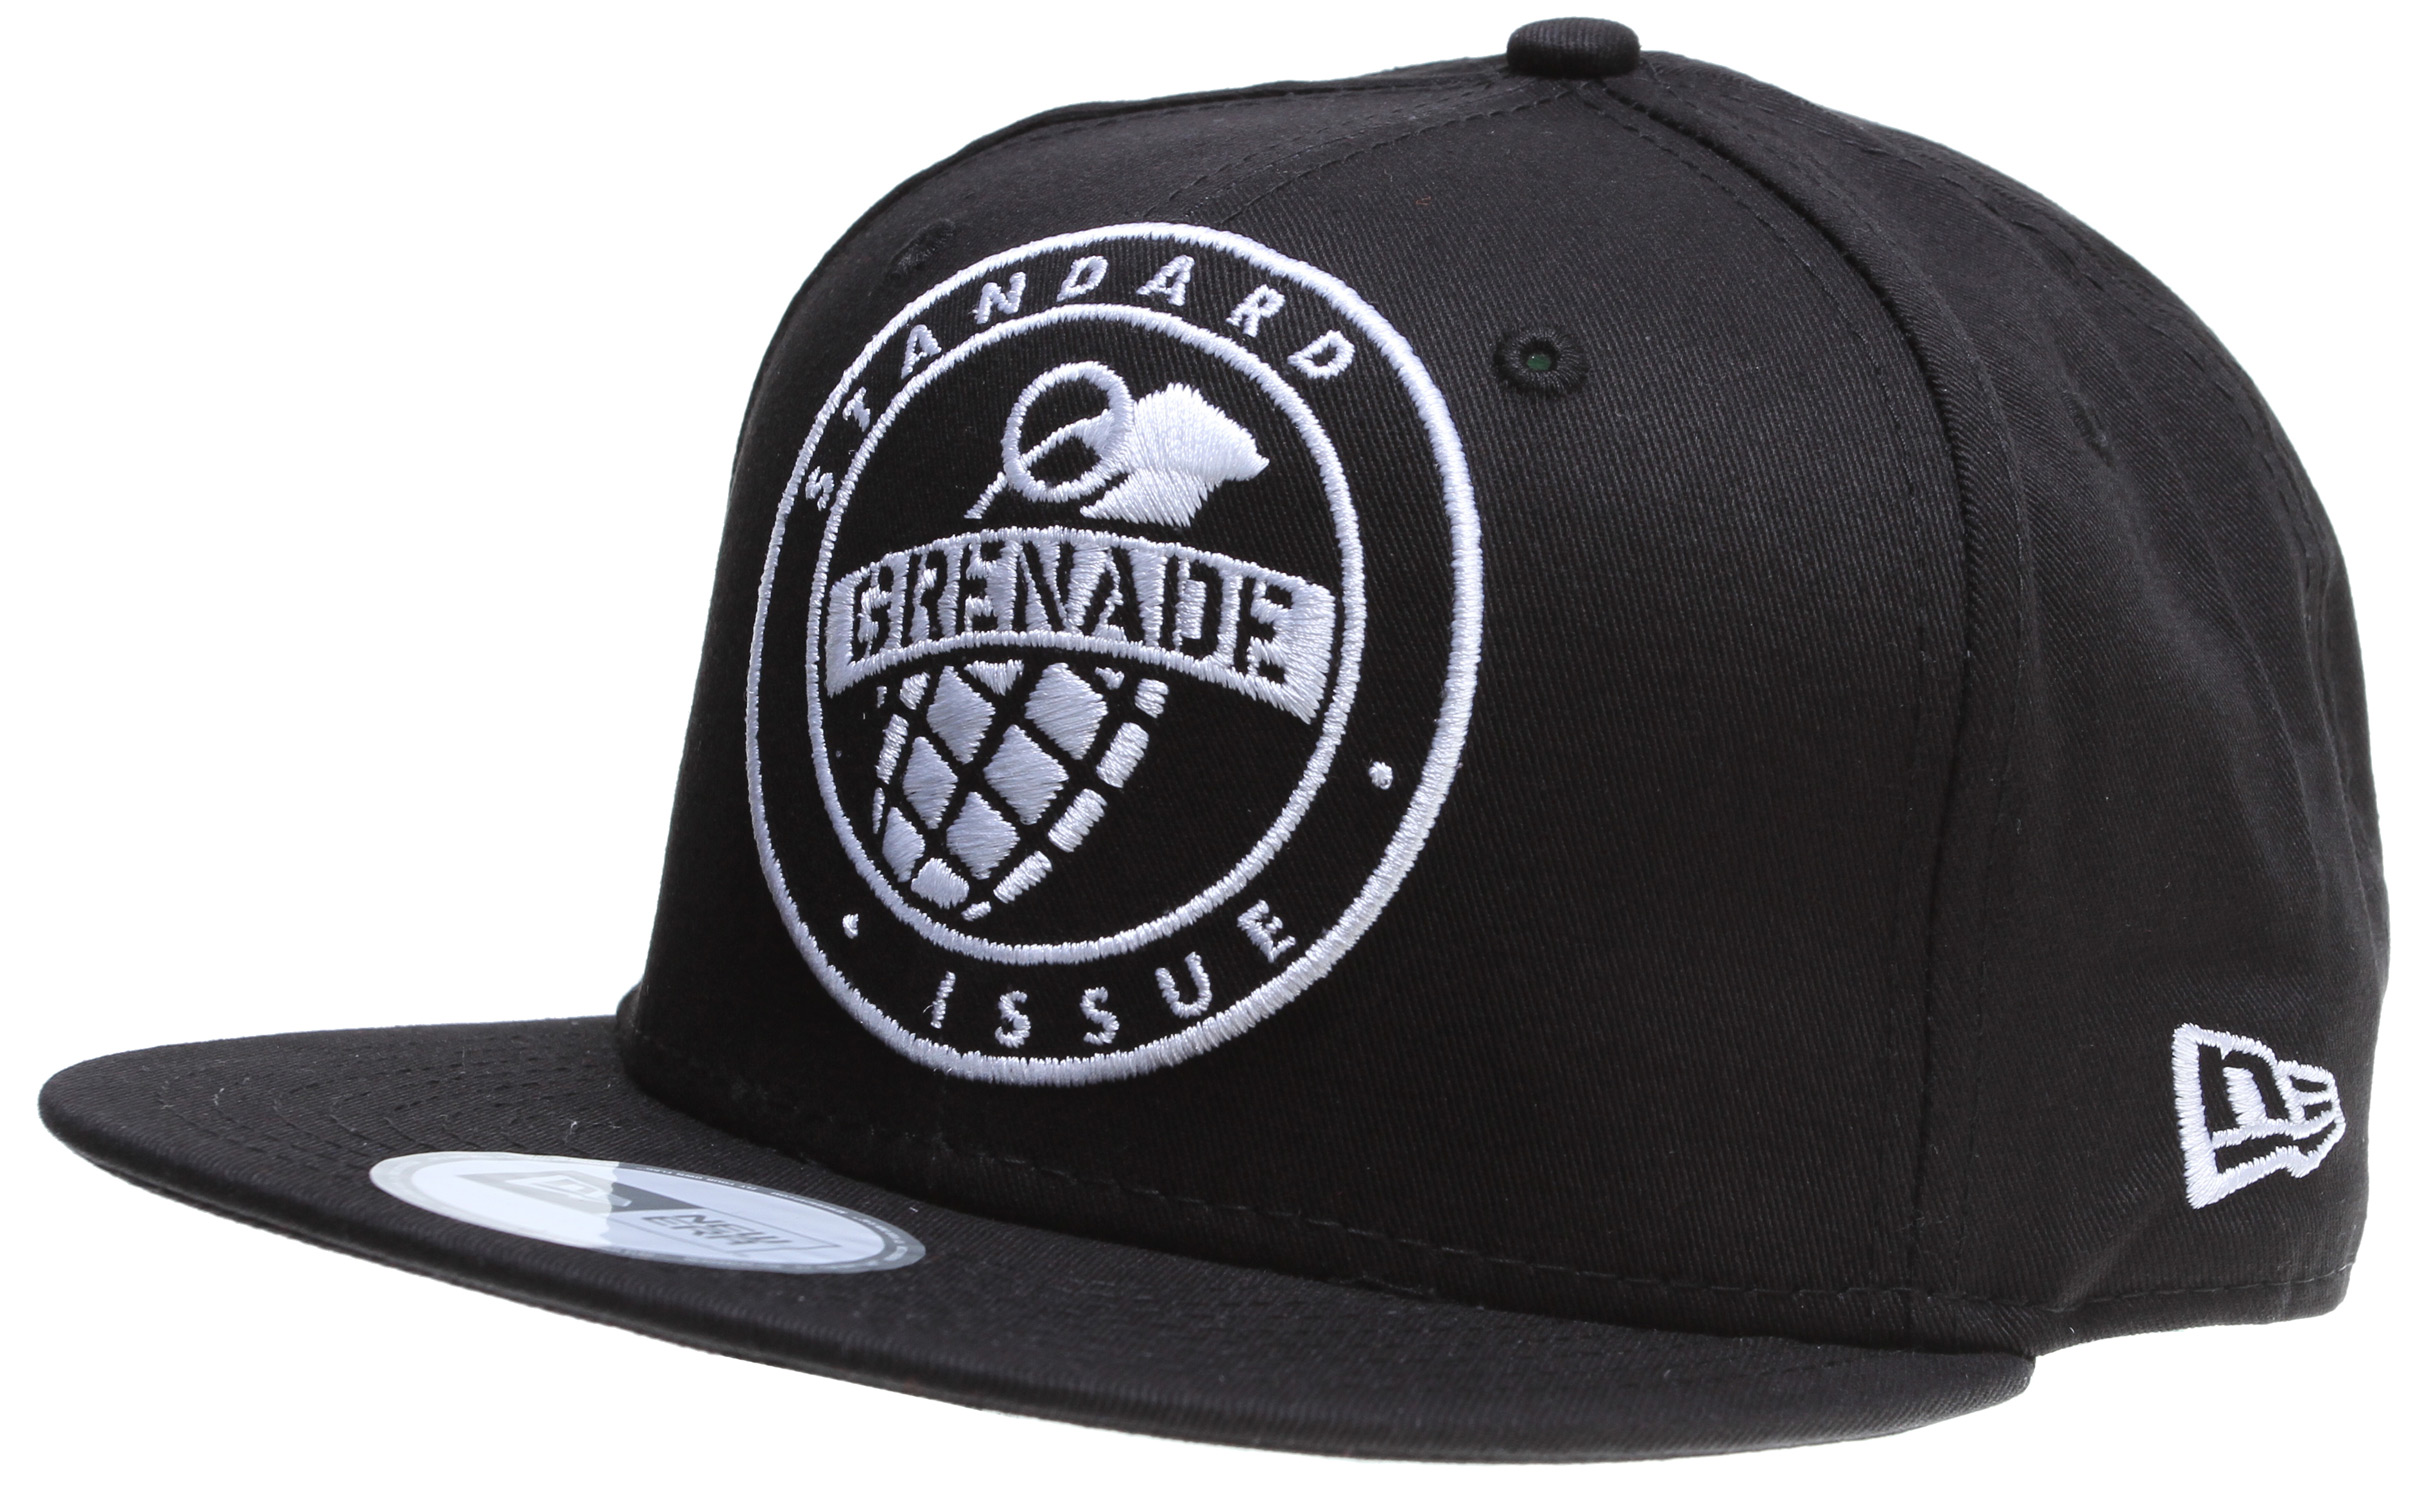 Key Features of the Grenade Emblem Cap: 100% Cotton NEW ERA SNAP BACK Embroidered Logo - $18.95